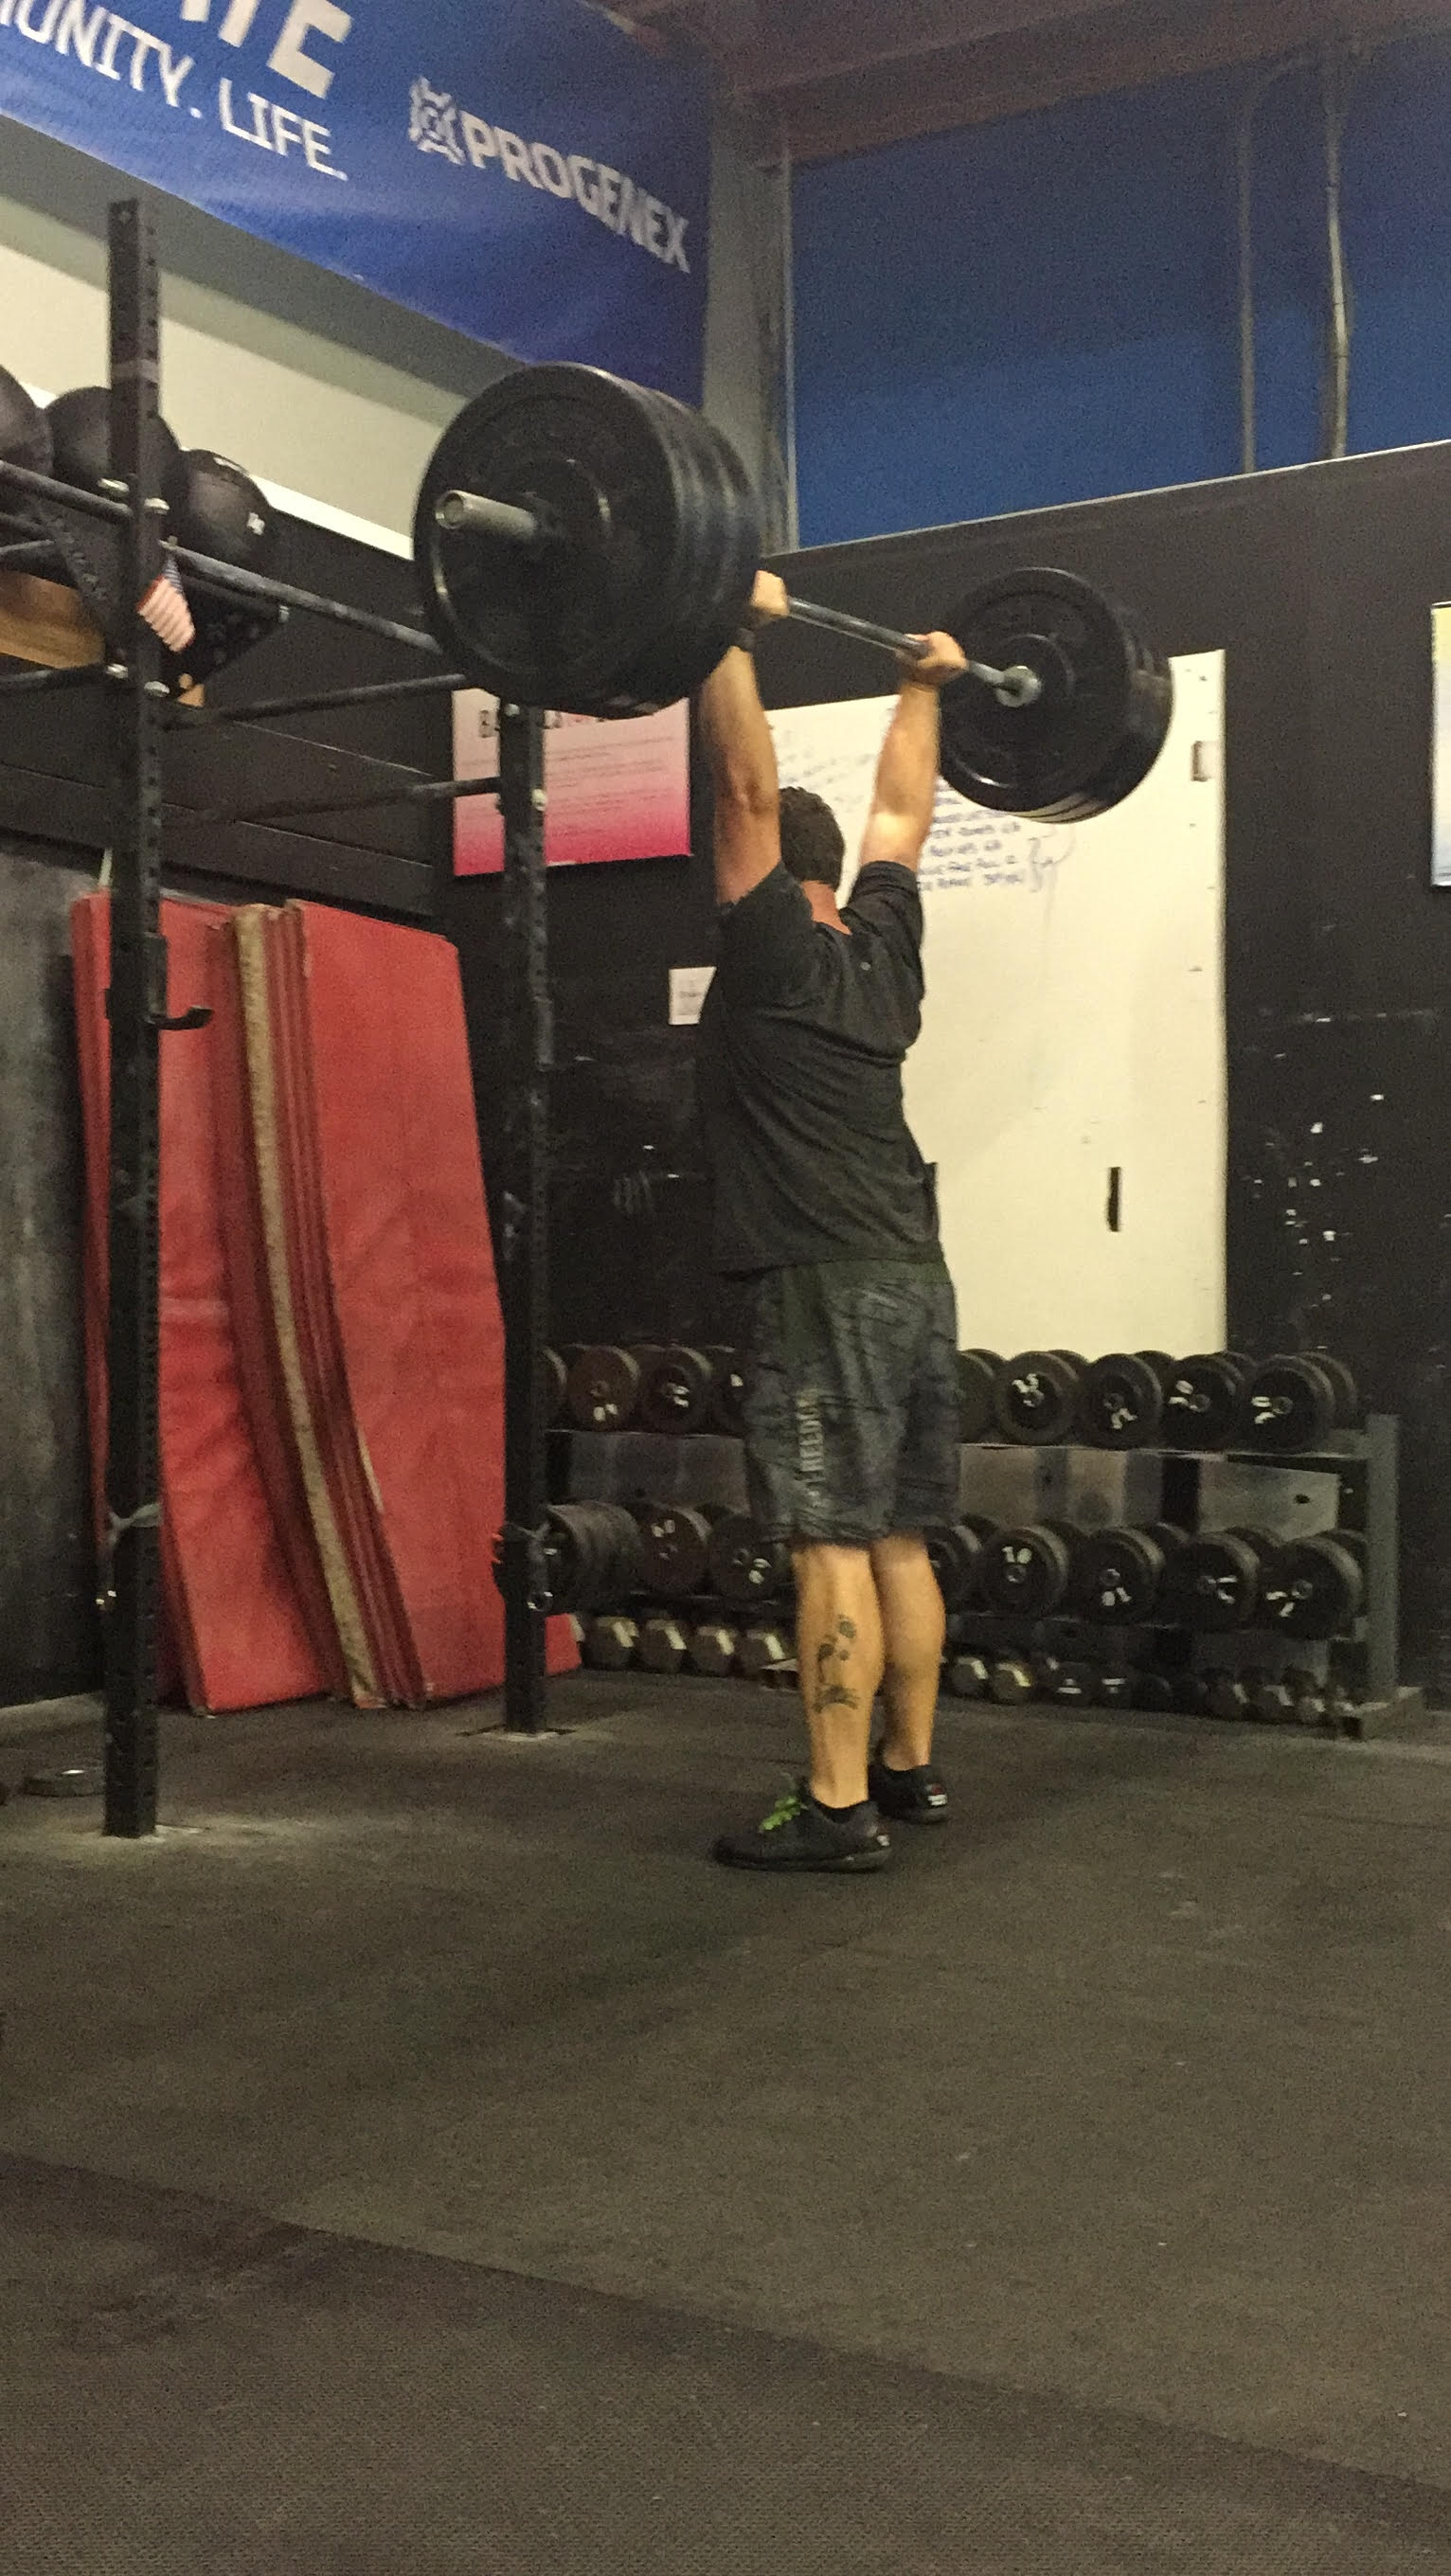 Thursday 7/13 – The Helm CrossFit